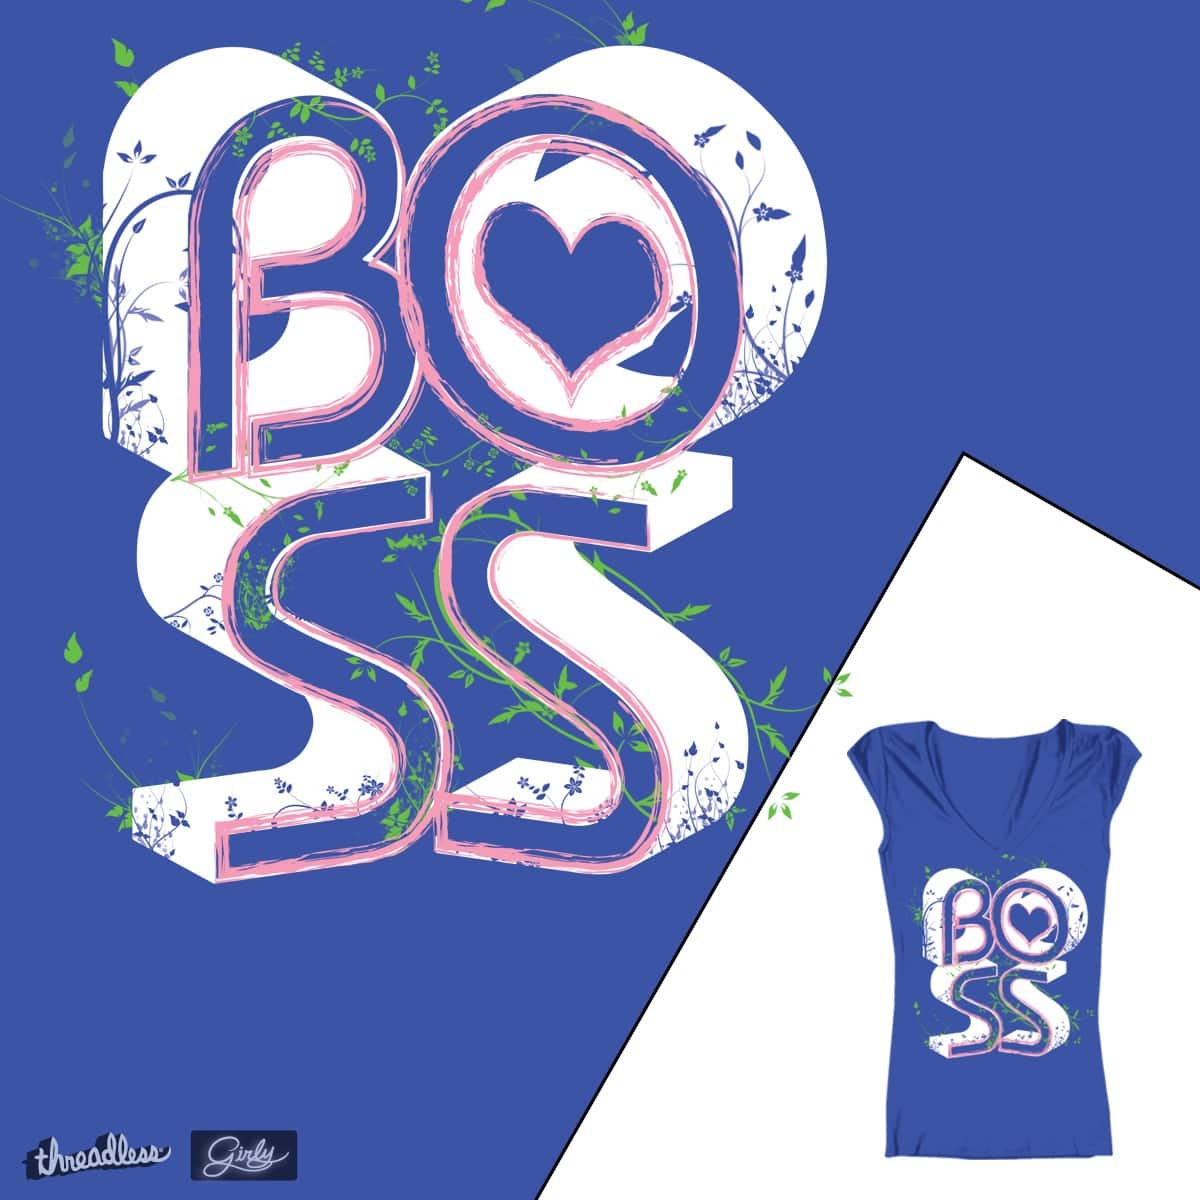 Who's the Boss? by FlyClothingJA on Threadless